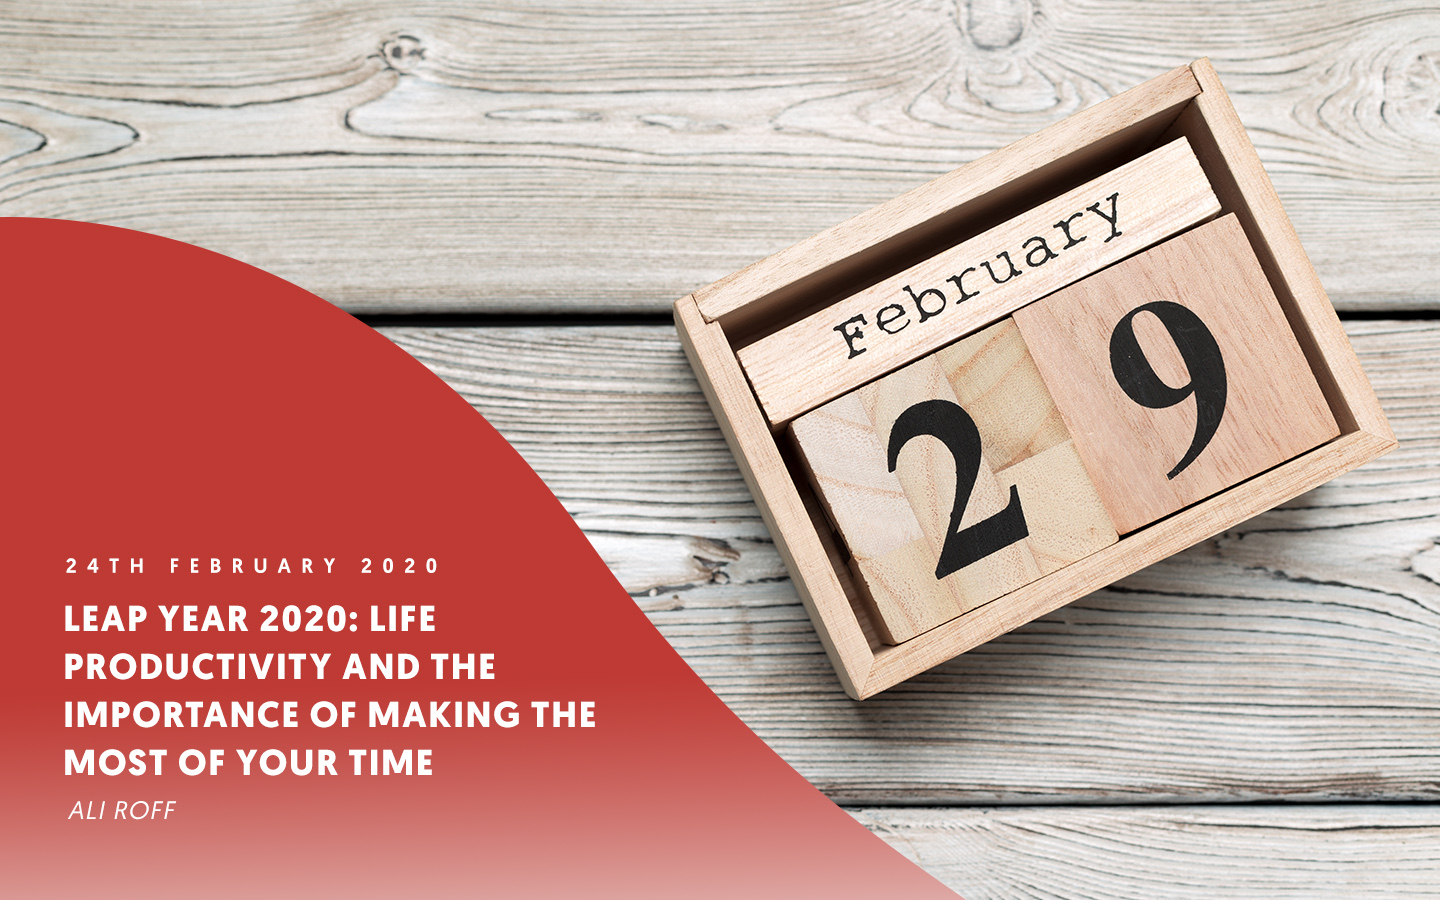 Leap year 2020: life productivity and the importance of making the most of your time